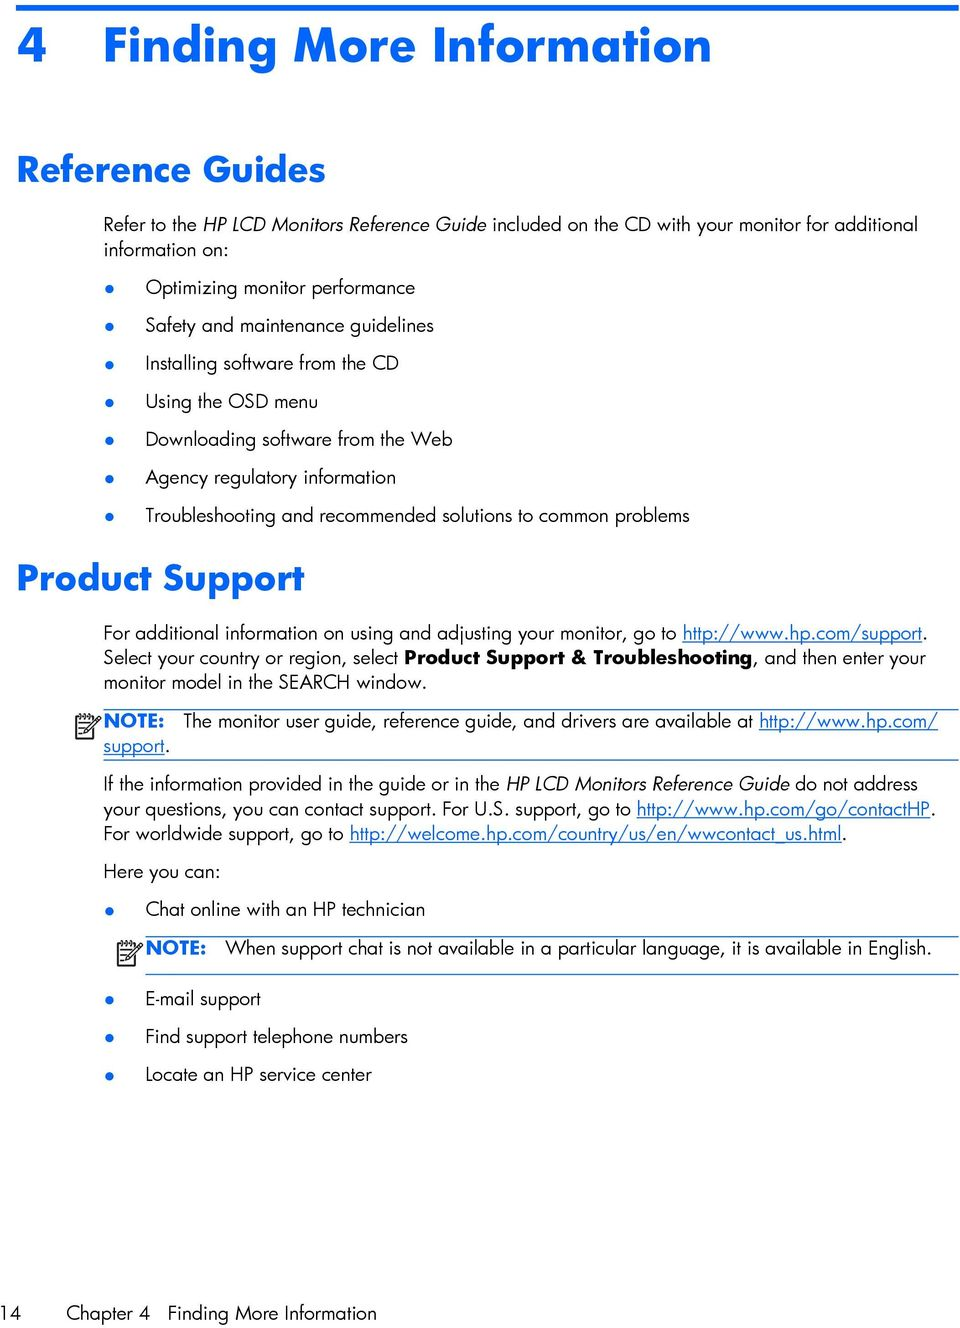 Product Support For additional information on using and adjusting your monitor, go to http://www.hp.com/support.